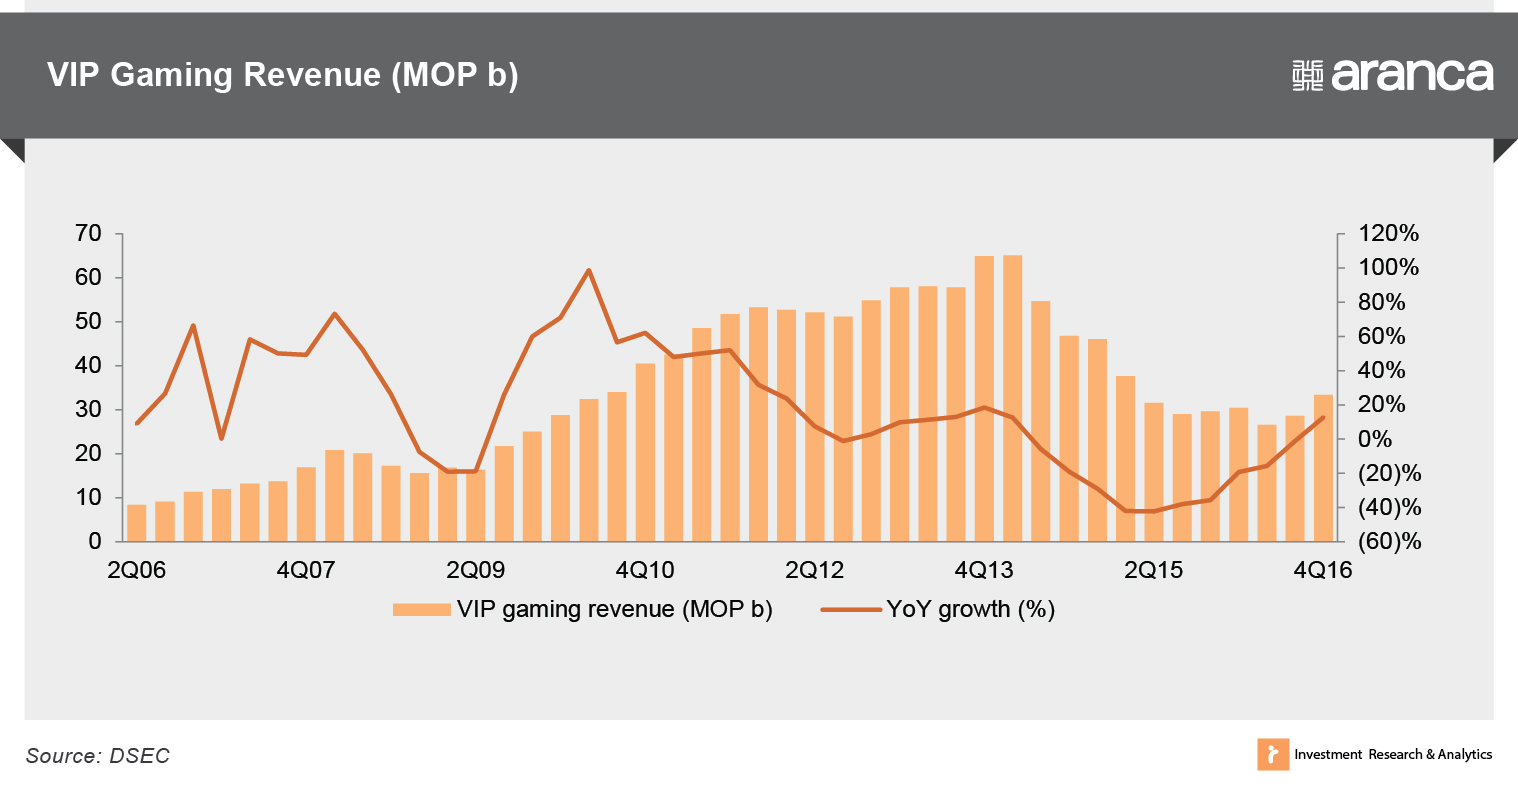 VIP gaming revenue (MOP b)